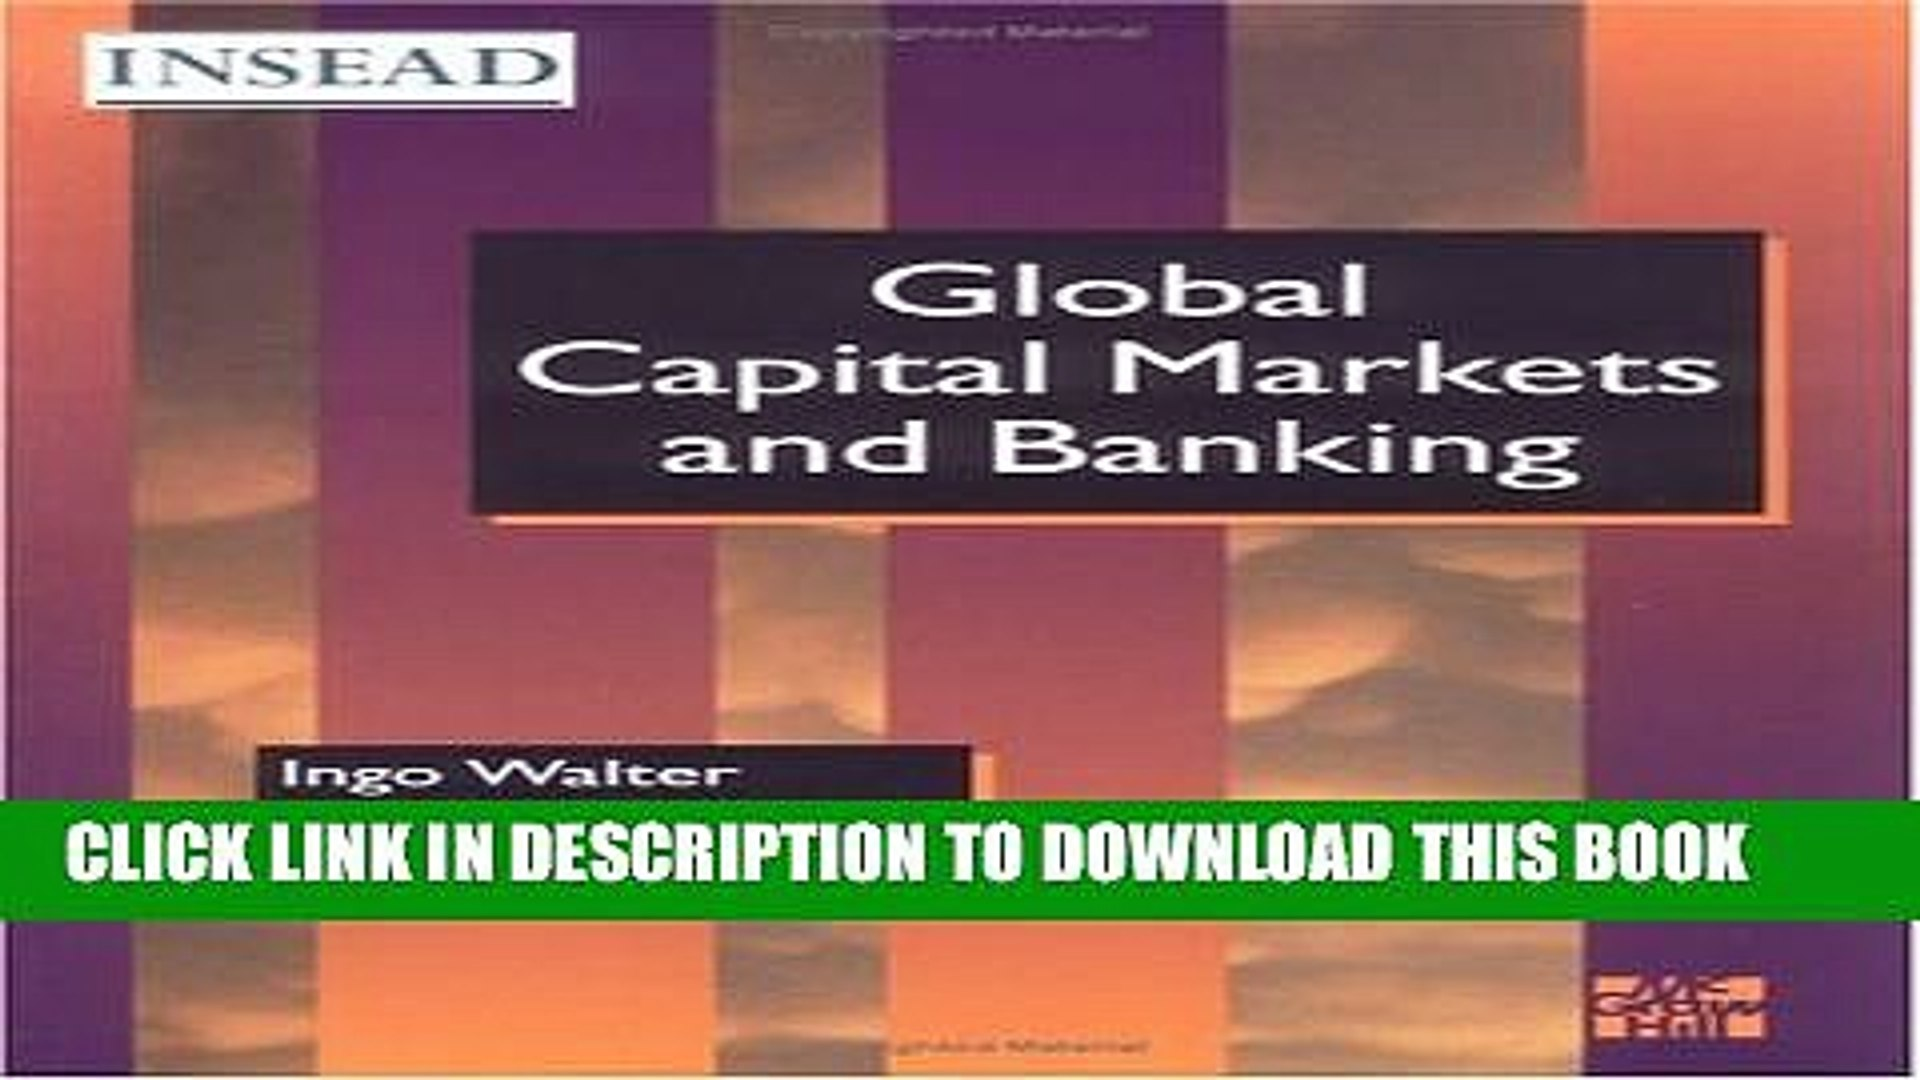 [PDF] Global Capital Markets and Banking (INSEAD Global Management) Popular Online